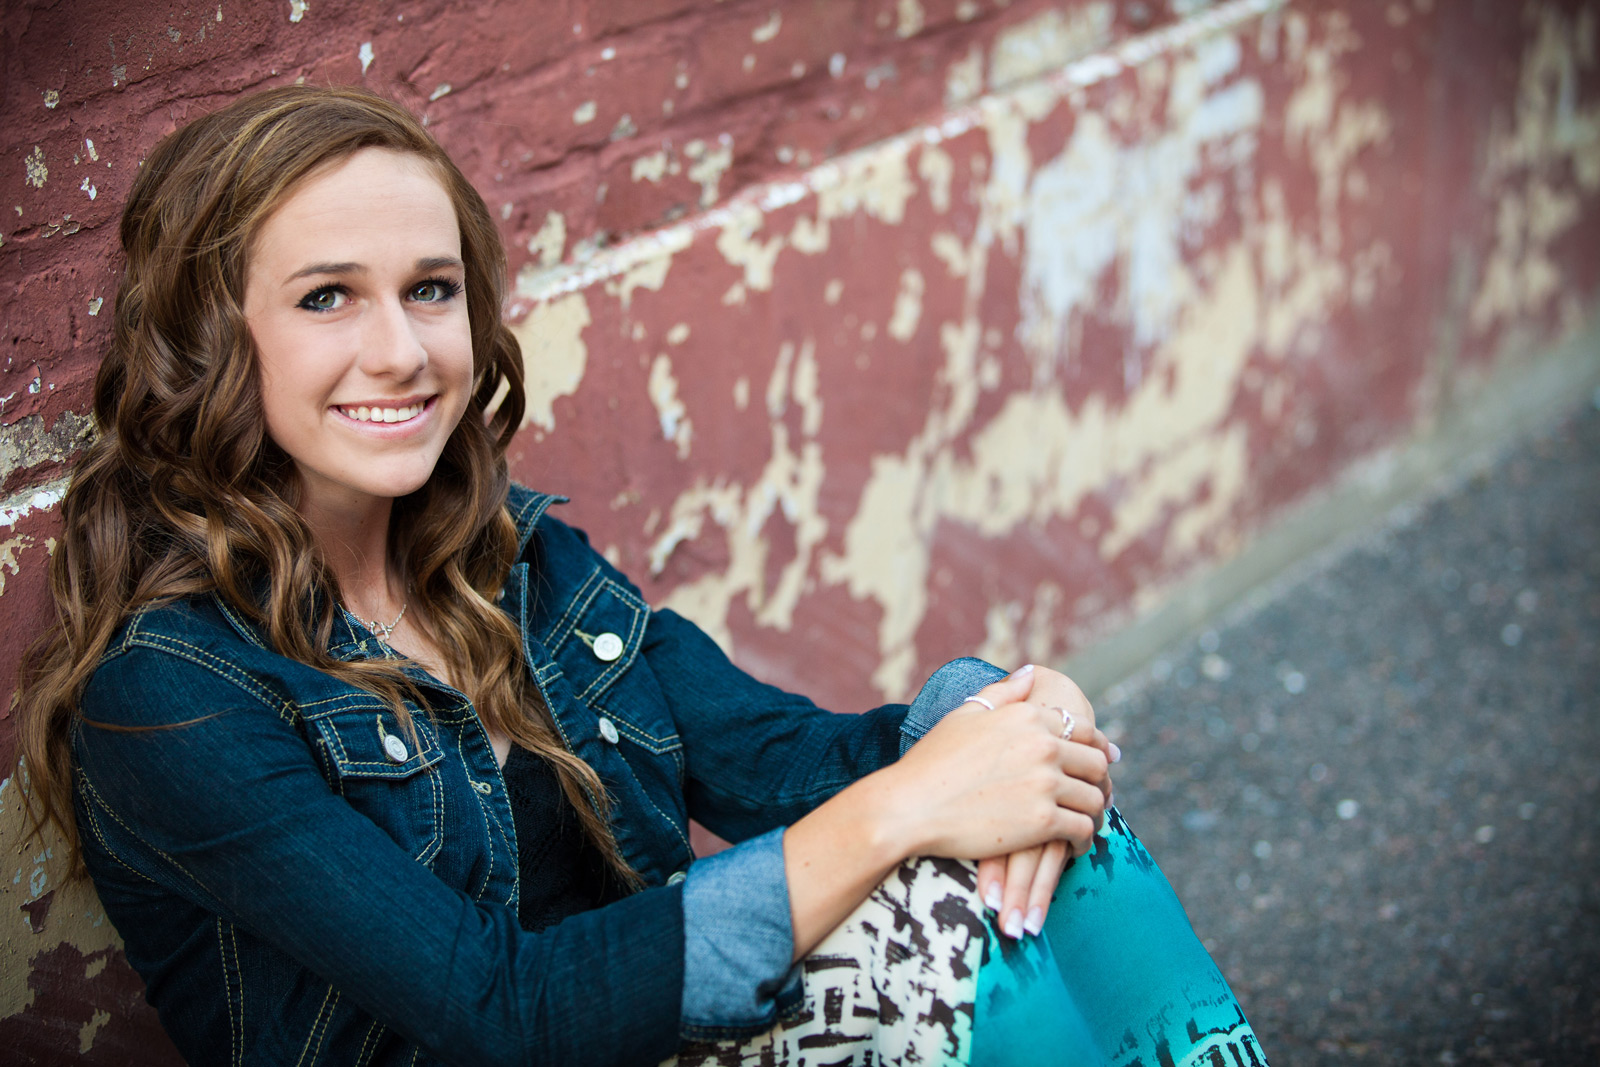 Kendra's urban senior portraits session